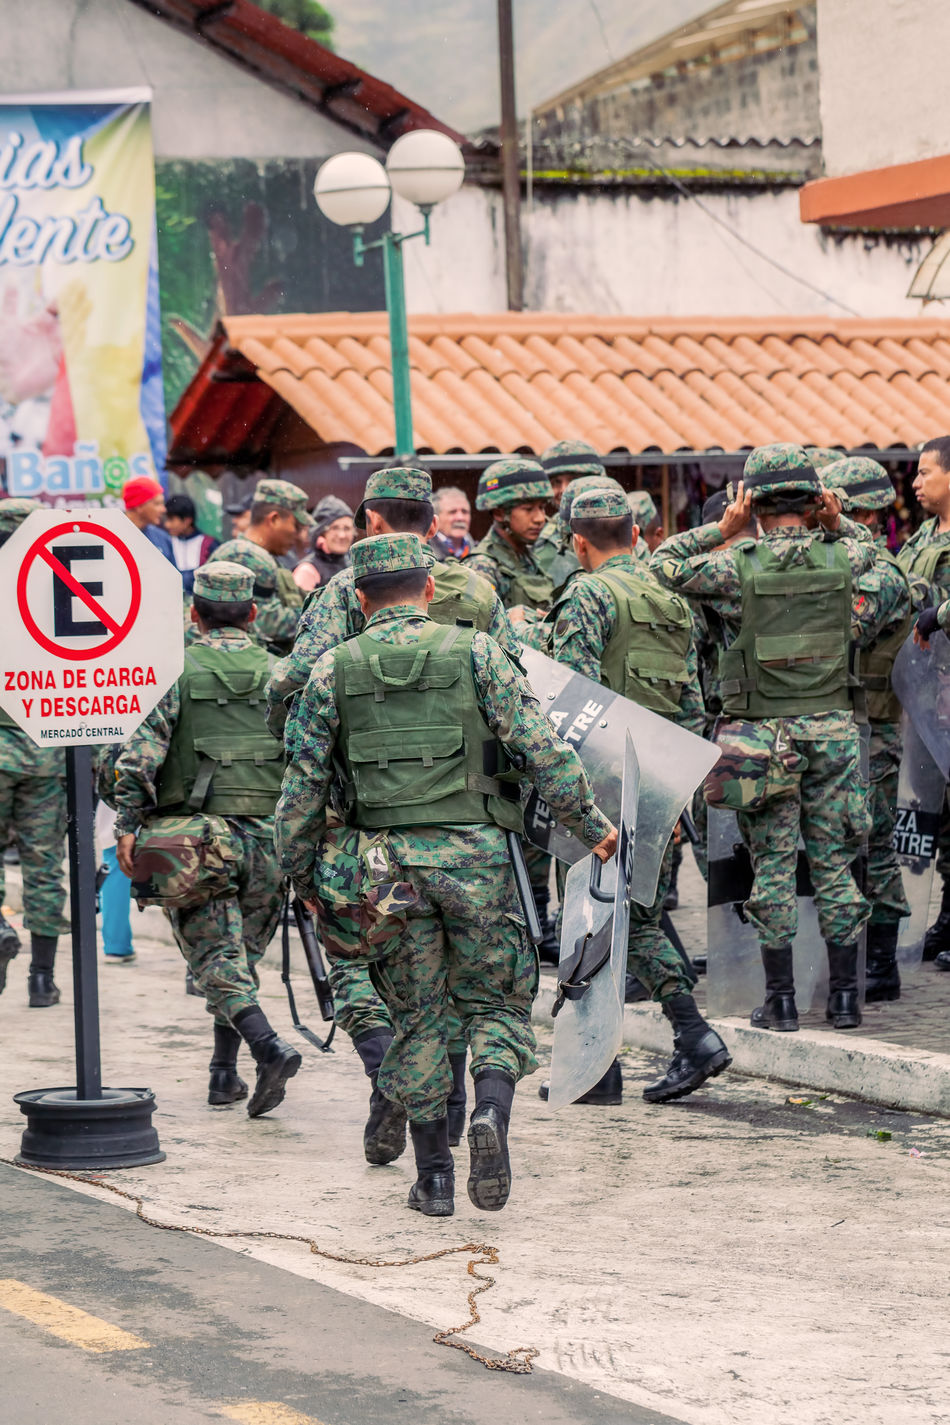 Banos De Agua Santa, Ecuador - 23 June, 2016: Army Of Ecuador Organize The Welcoming For The President Rafael Correa, Ecuador, South America Adult Adults Only Army Army Life Army Soldier Camouflage Clothing City Crowded Day Ecuador Elections Group Of People Manifestation Men Military Military Life Military Uniform Outdoors Peace People Police President Protection South America Uniform